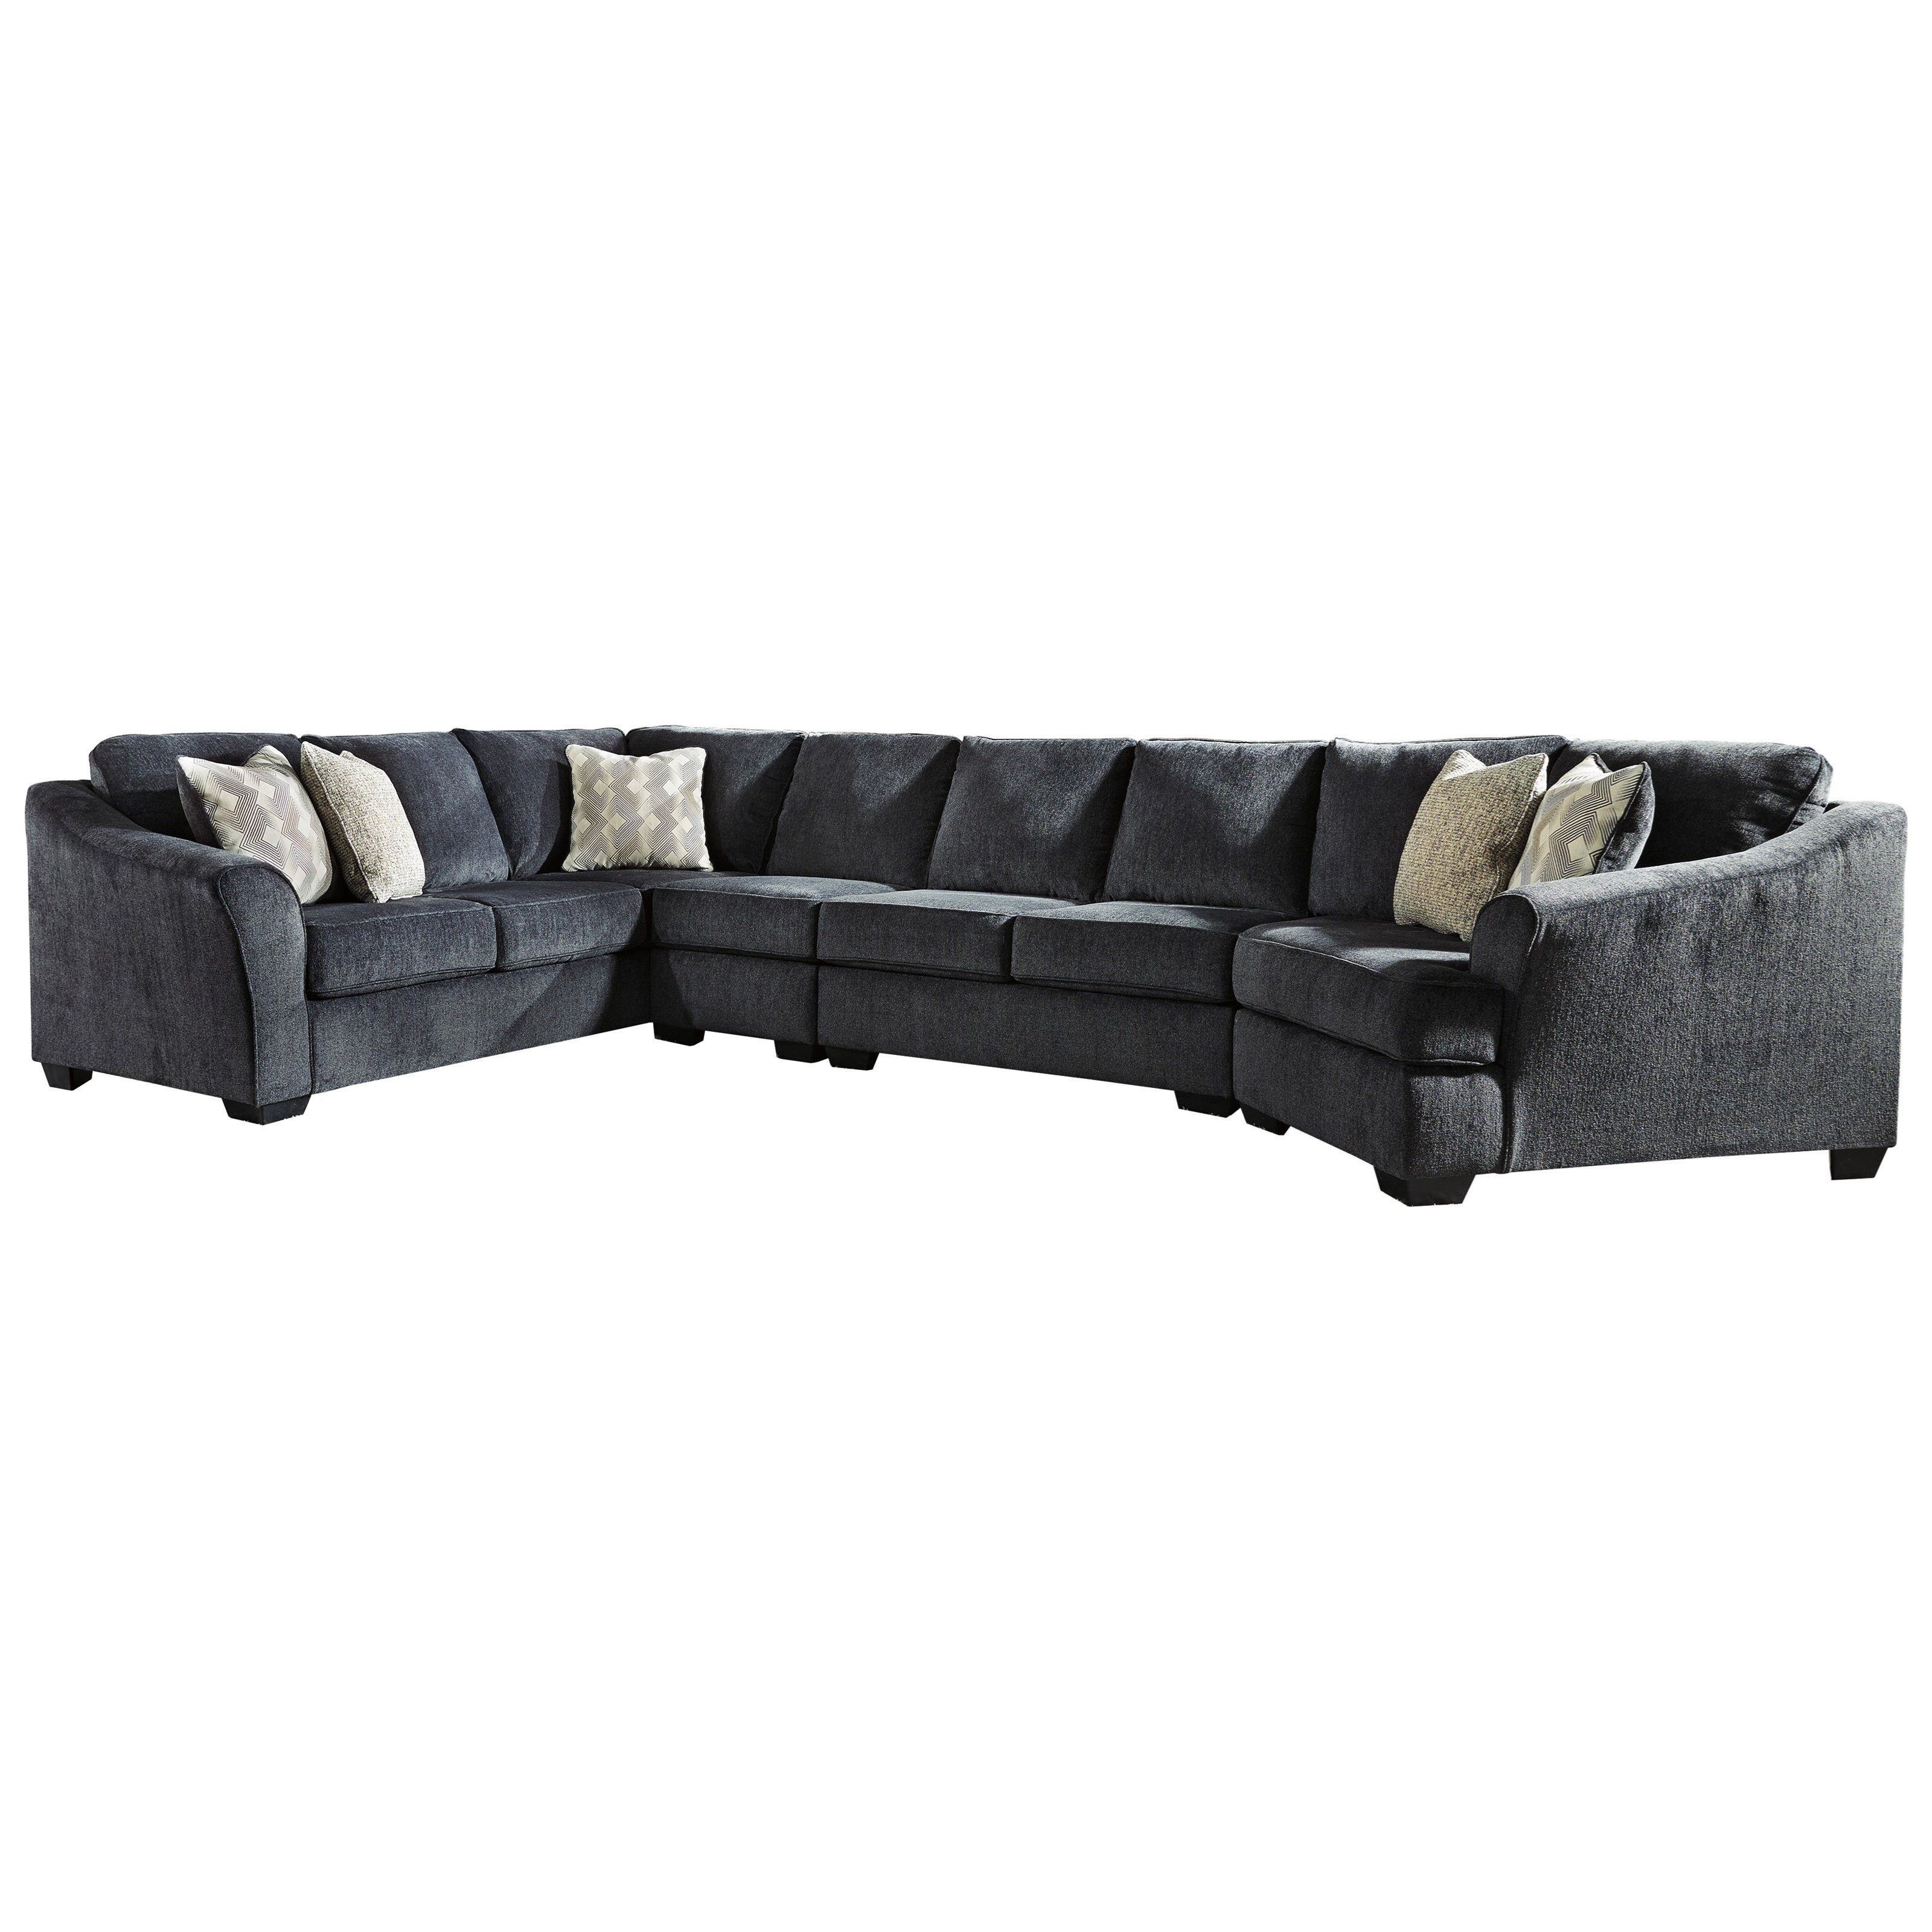 Eltmann 4-Piece Sectional with Right Cuddler by Ashley (Signature Design) at Johnny Janosik